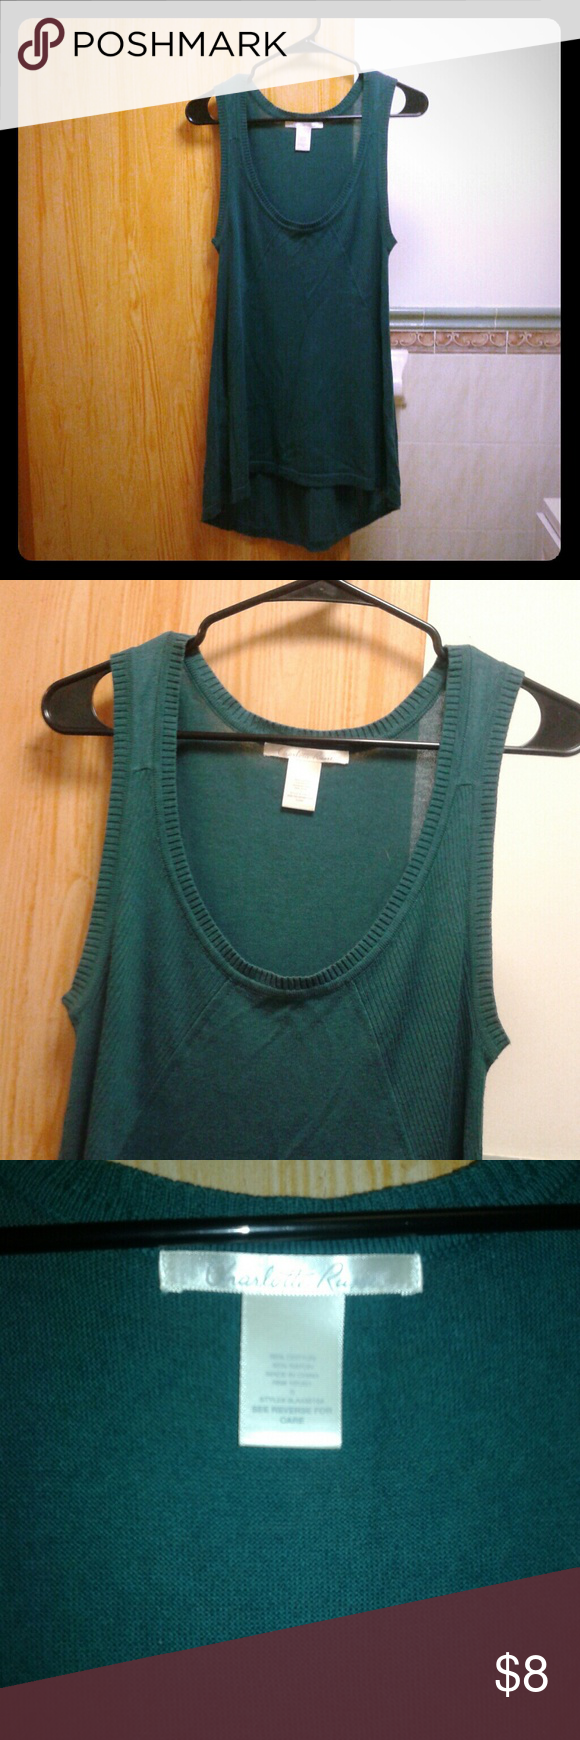 Green CharlotteRusse top Great Condition!  Long/Forest Green  Tag Says S - Should fit a M fine too  60% Cotton/ 40% Rayon Charlotte Russe Tops Blouses